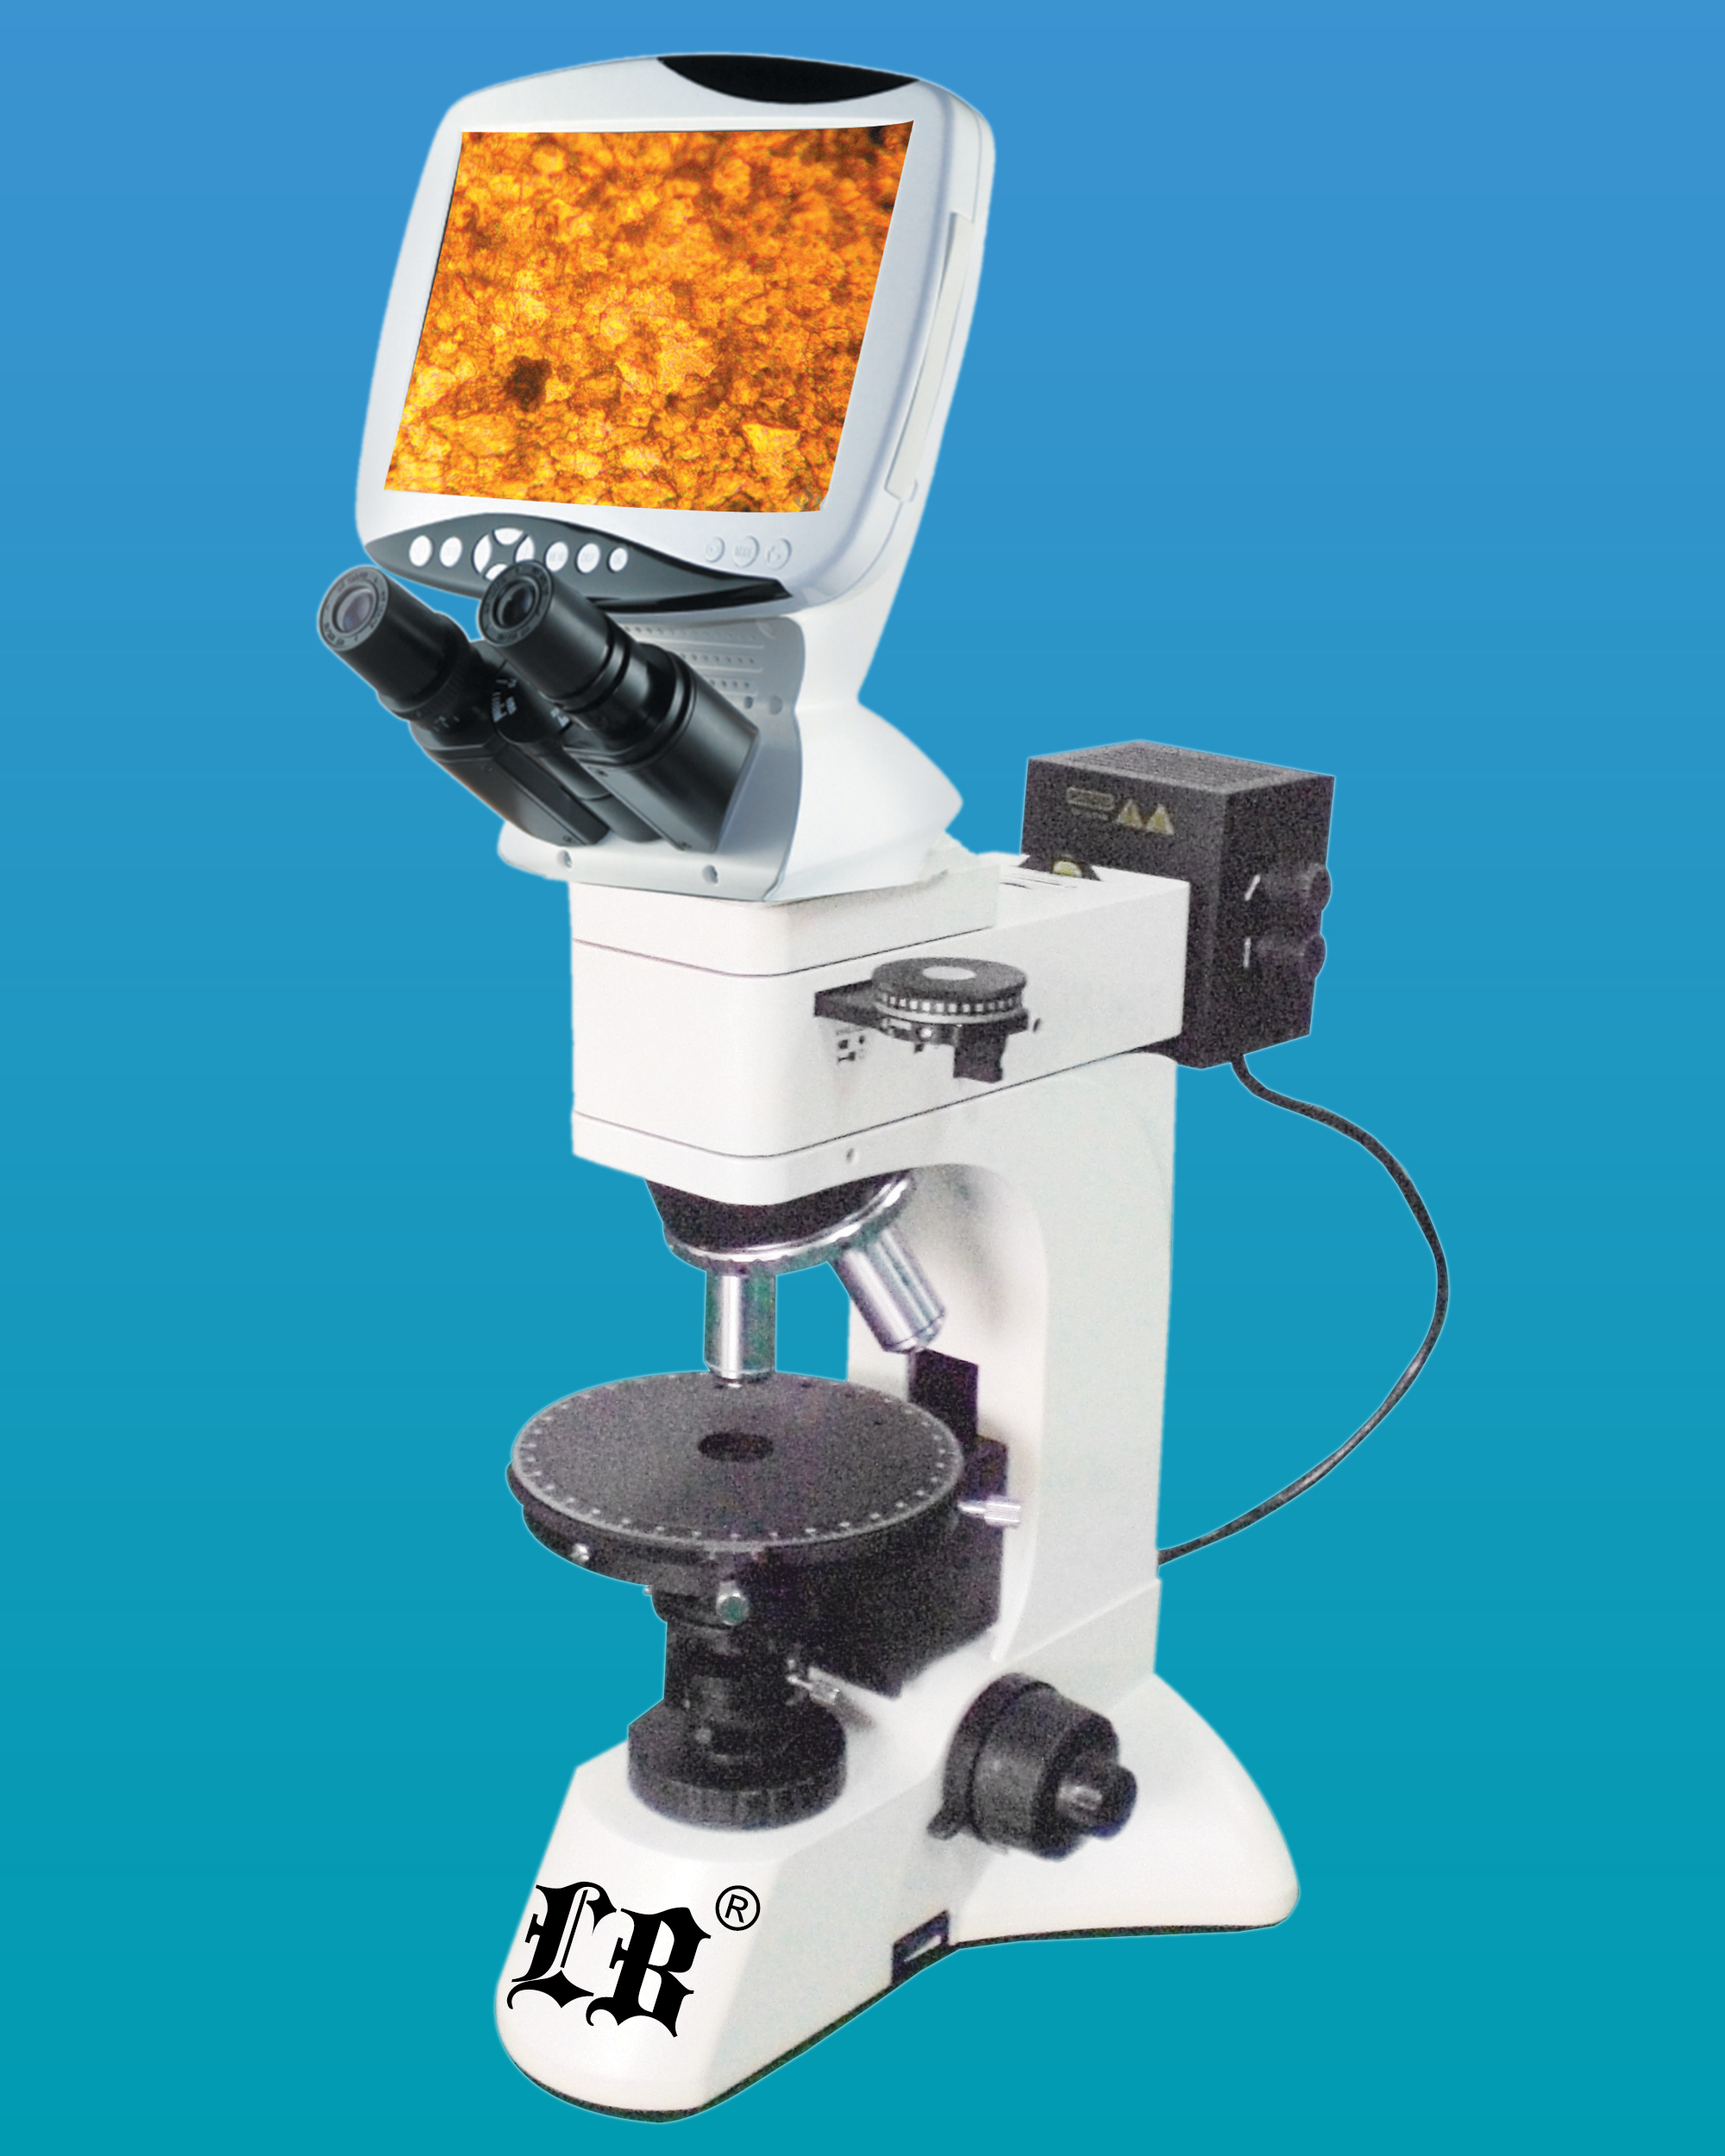 [LB-1500] Digital LCD Polarizing Microscope w/ 12.0MP Camera